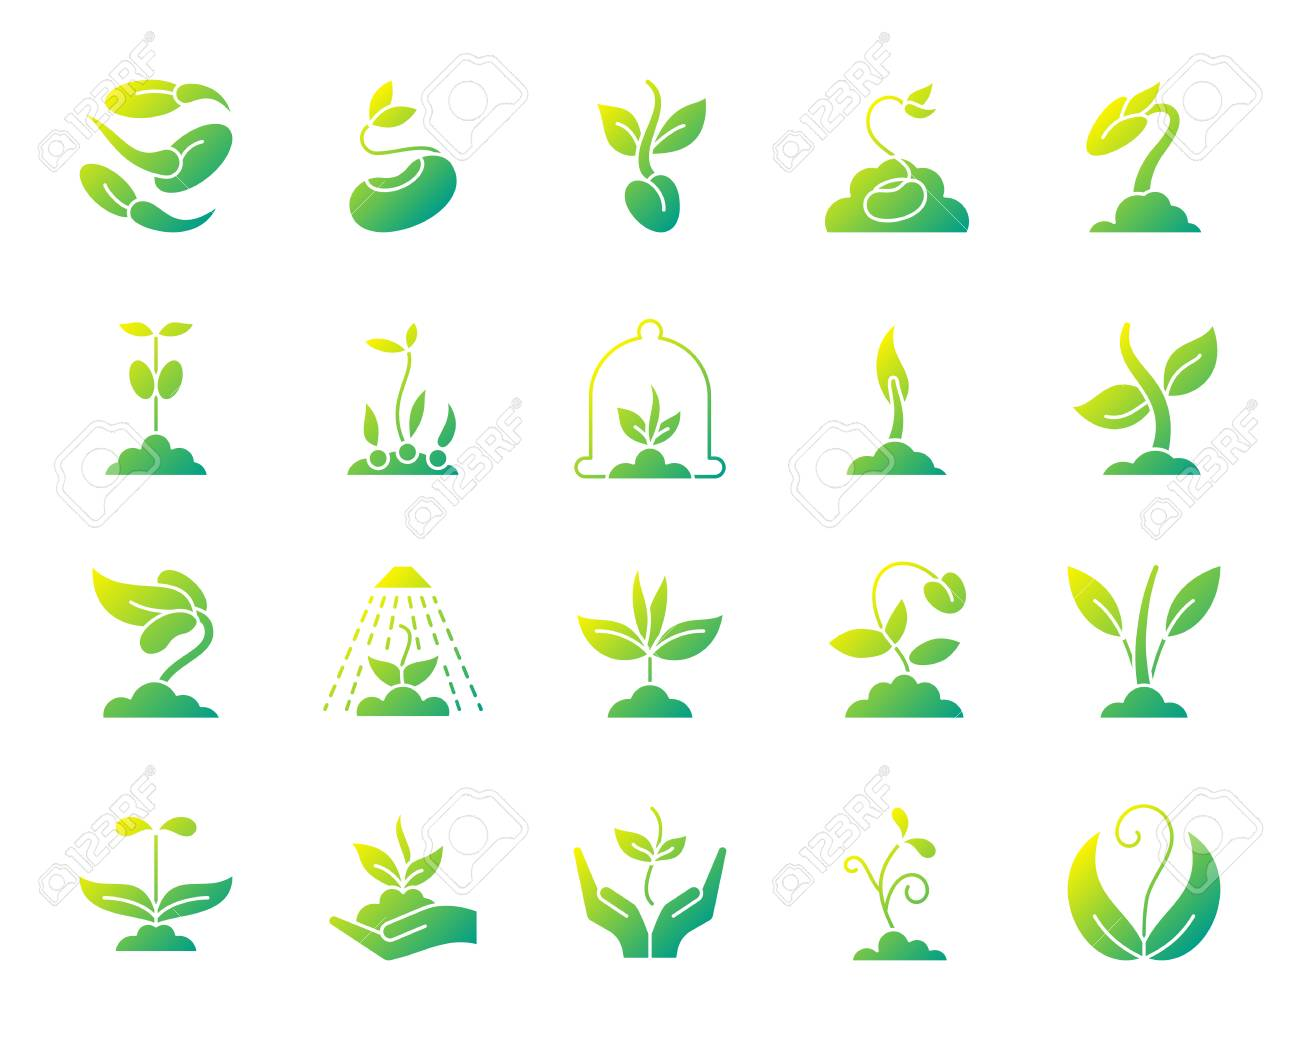 Sprout silhouette icons set. Isolated on white web sign kit of seeds. Plant pictogram collection includes tree, leaves, growing. Simple gradient symbol. Sprout vector icon shape - 101973051